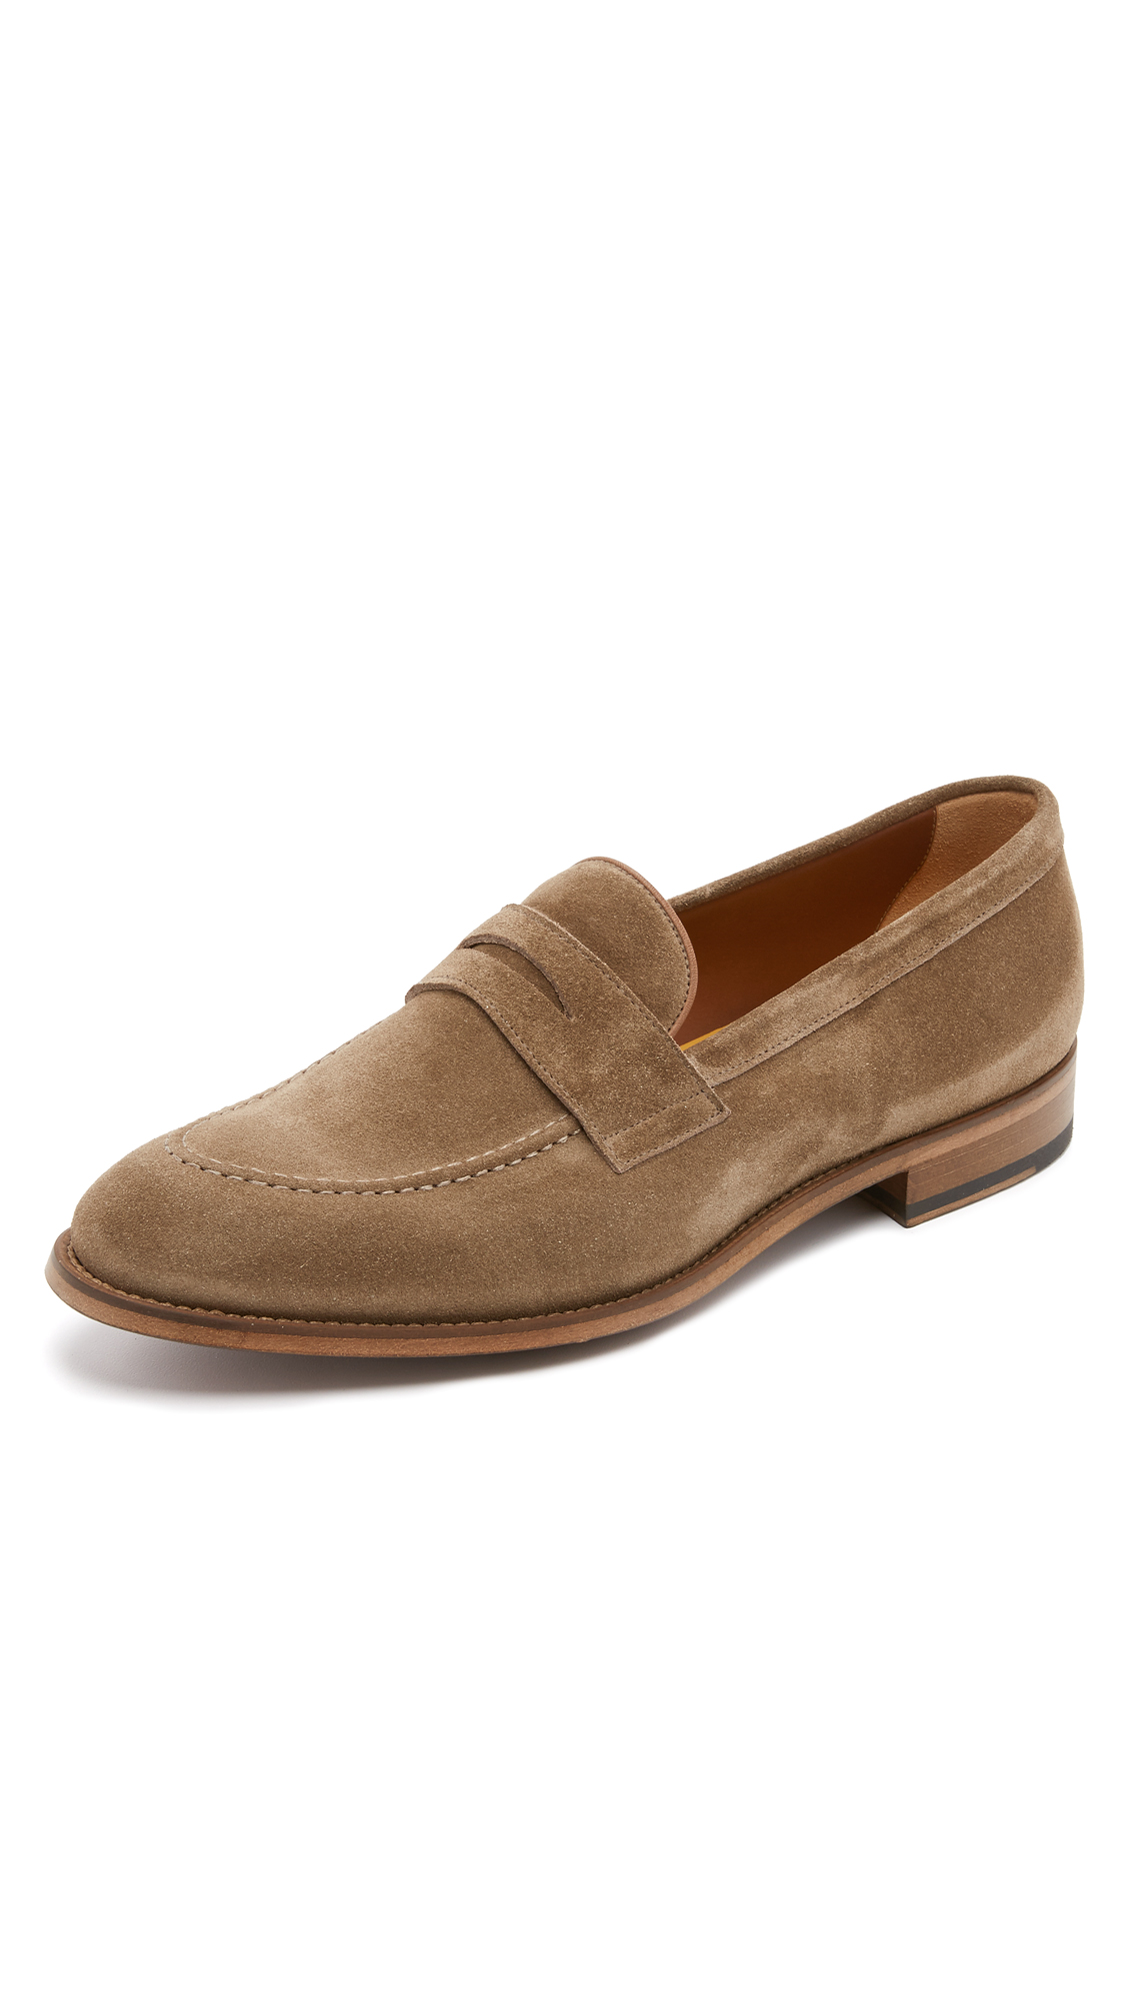 18d96cf6b9b Doucal s Bruno Penny Loafers